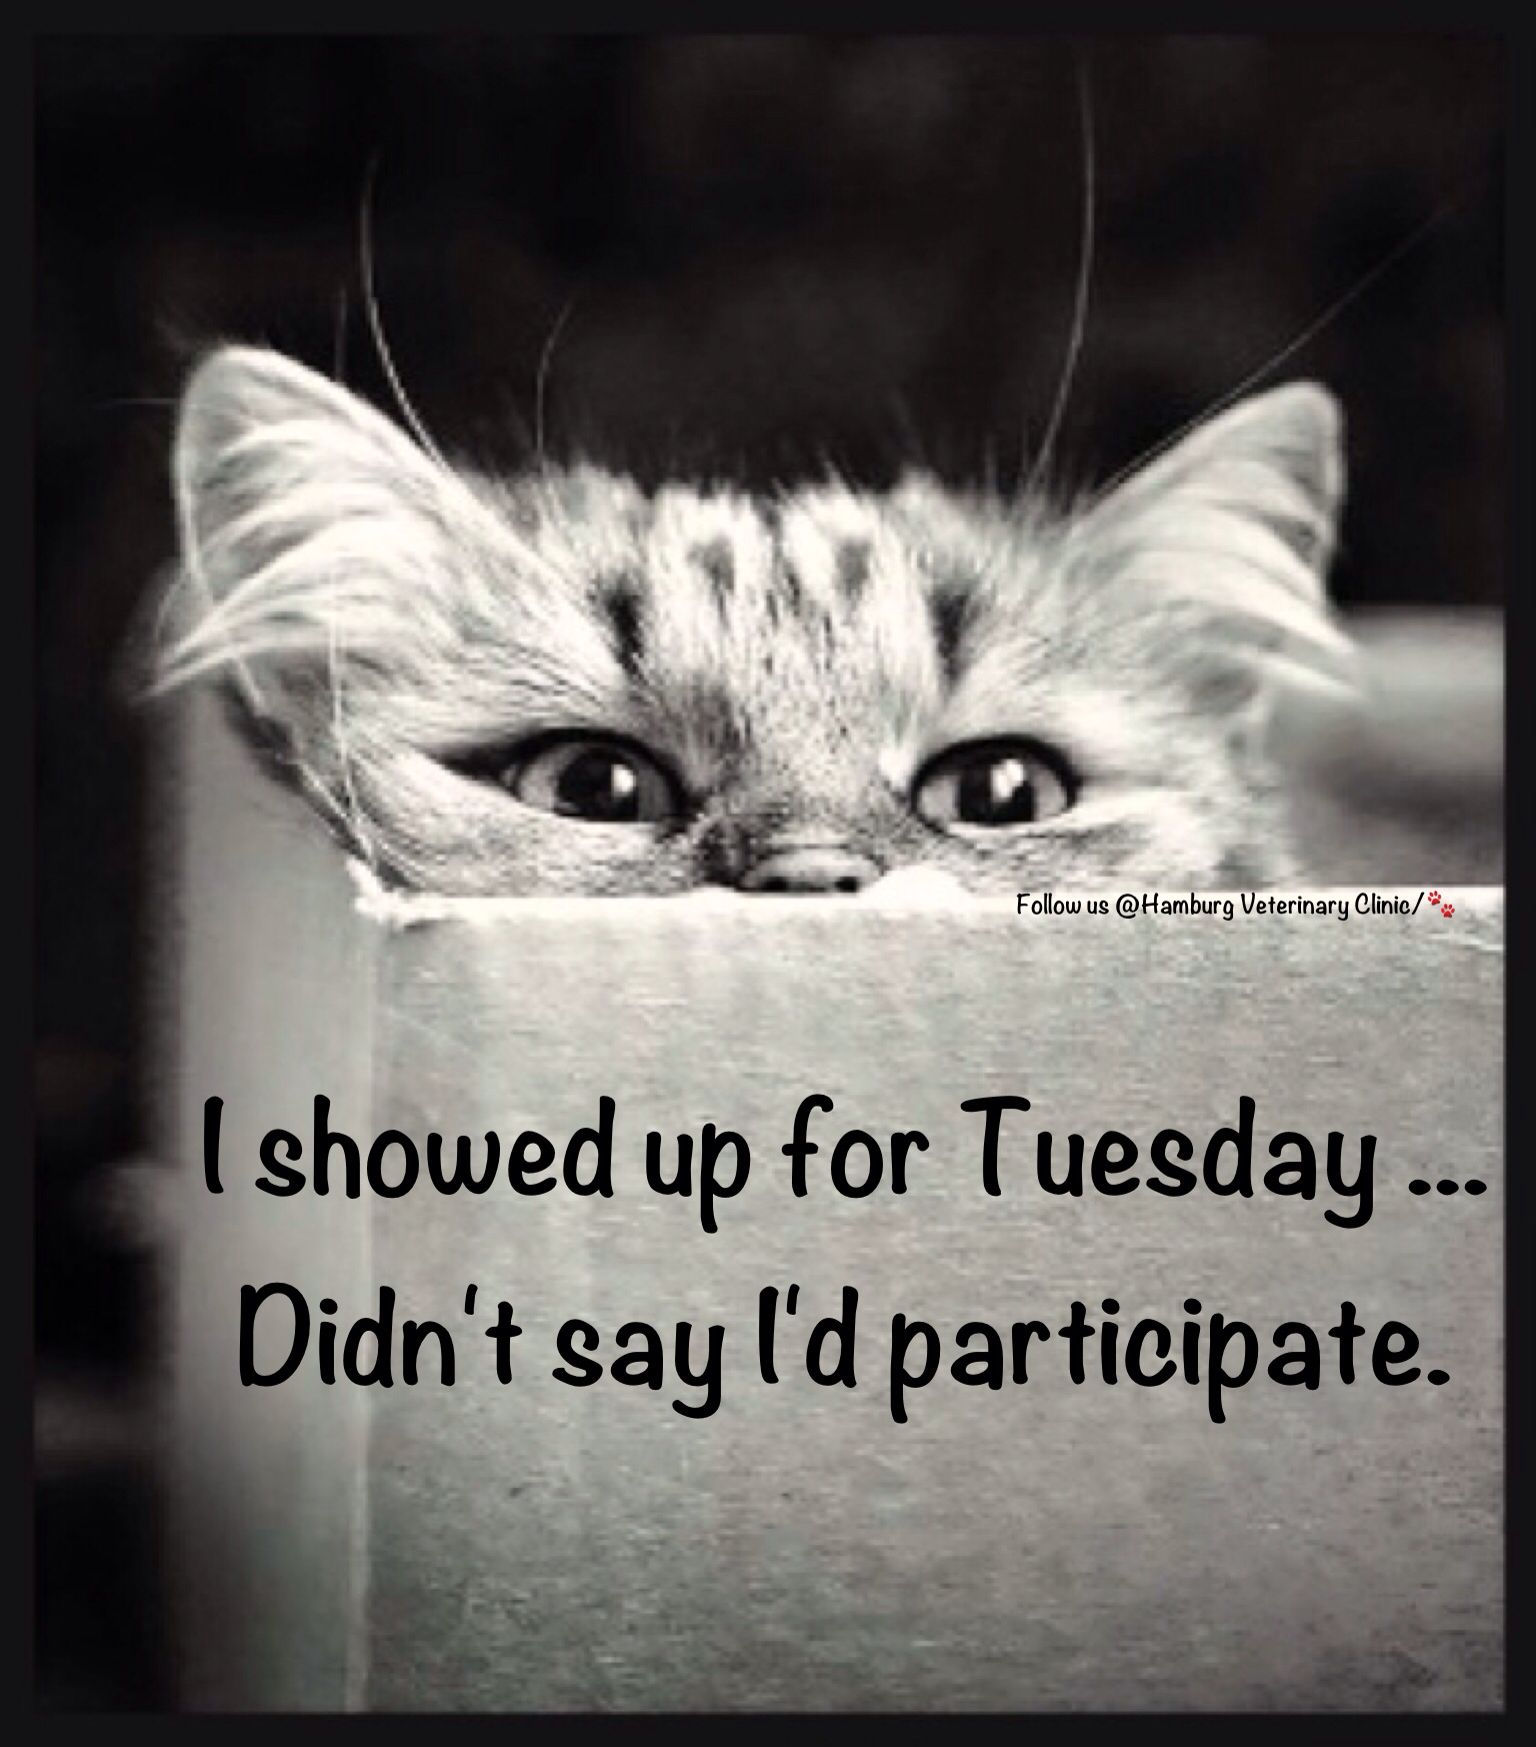 Pictures Of Animals With Quotes: Tuesday Humor